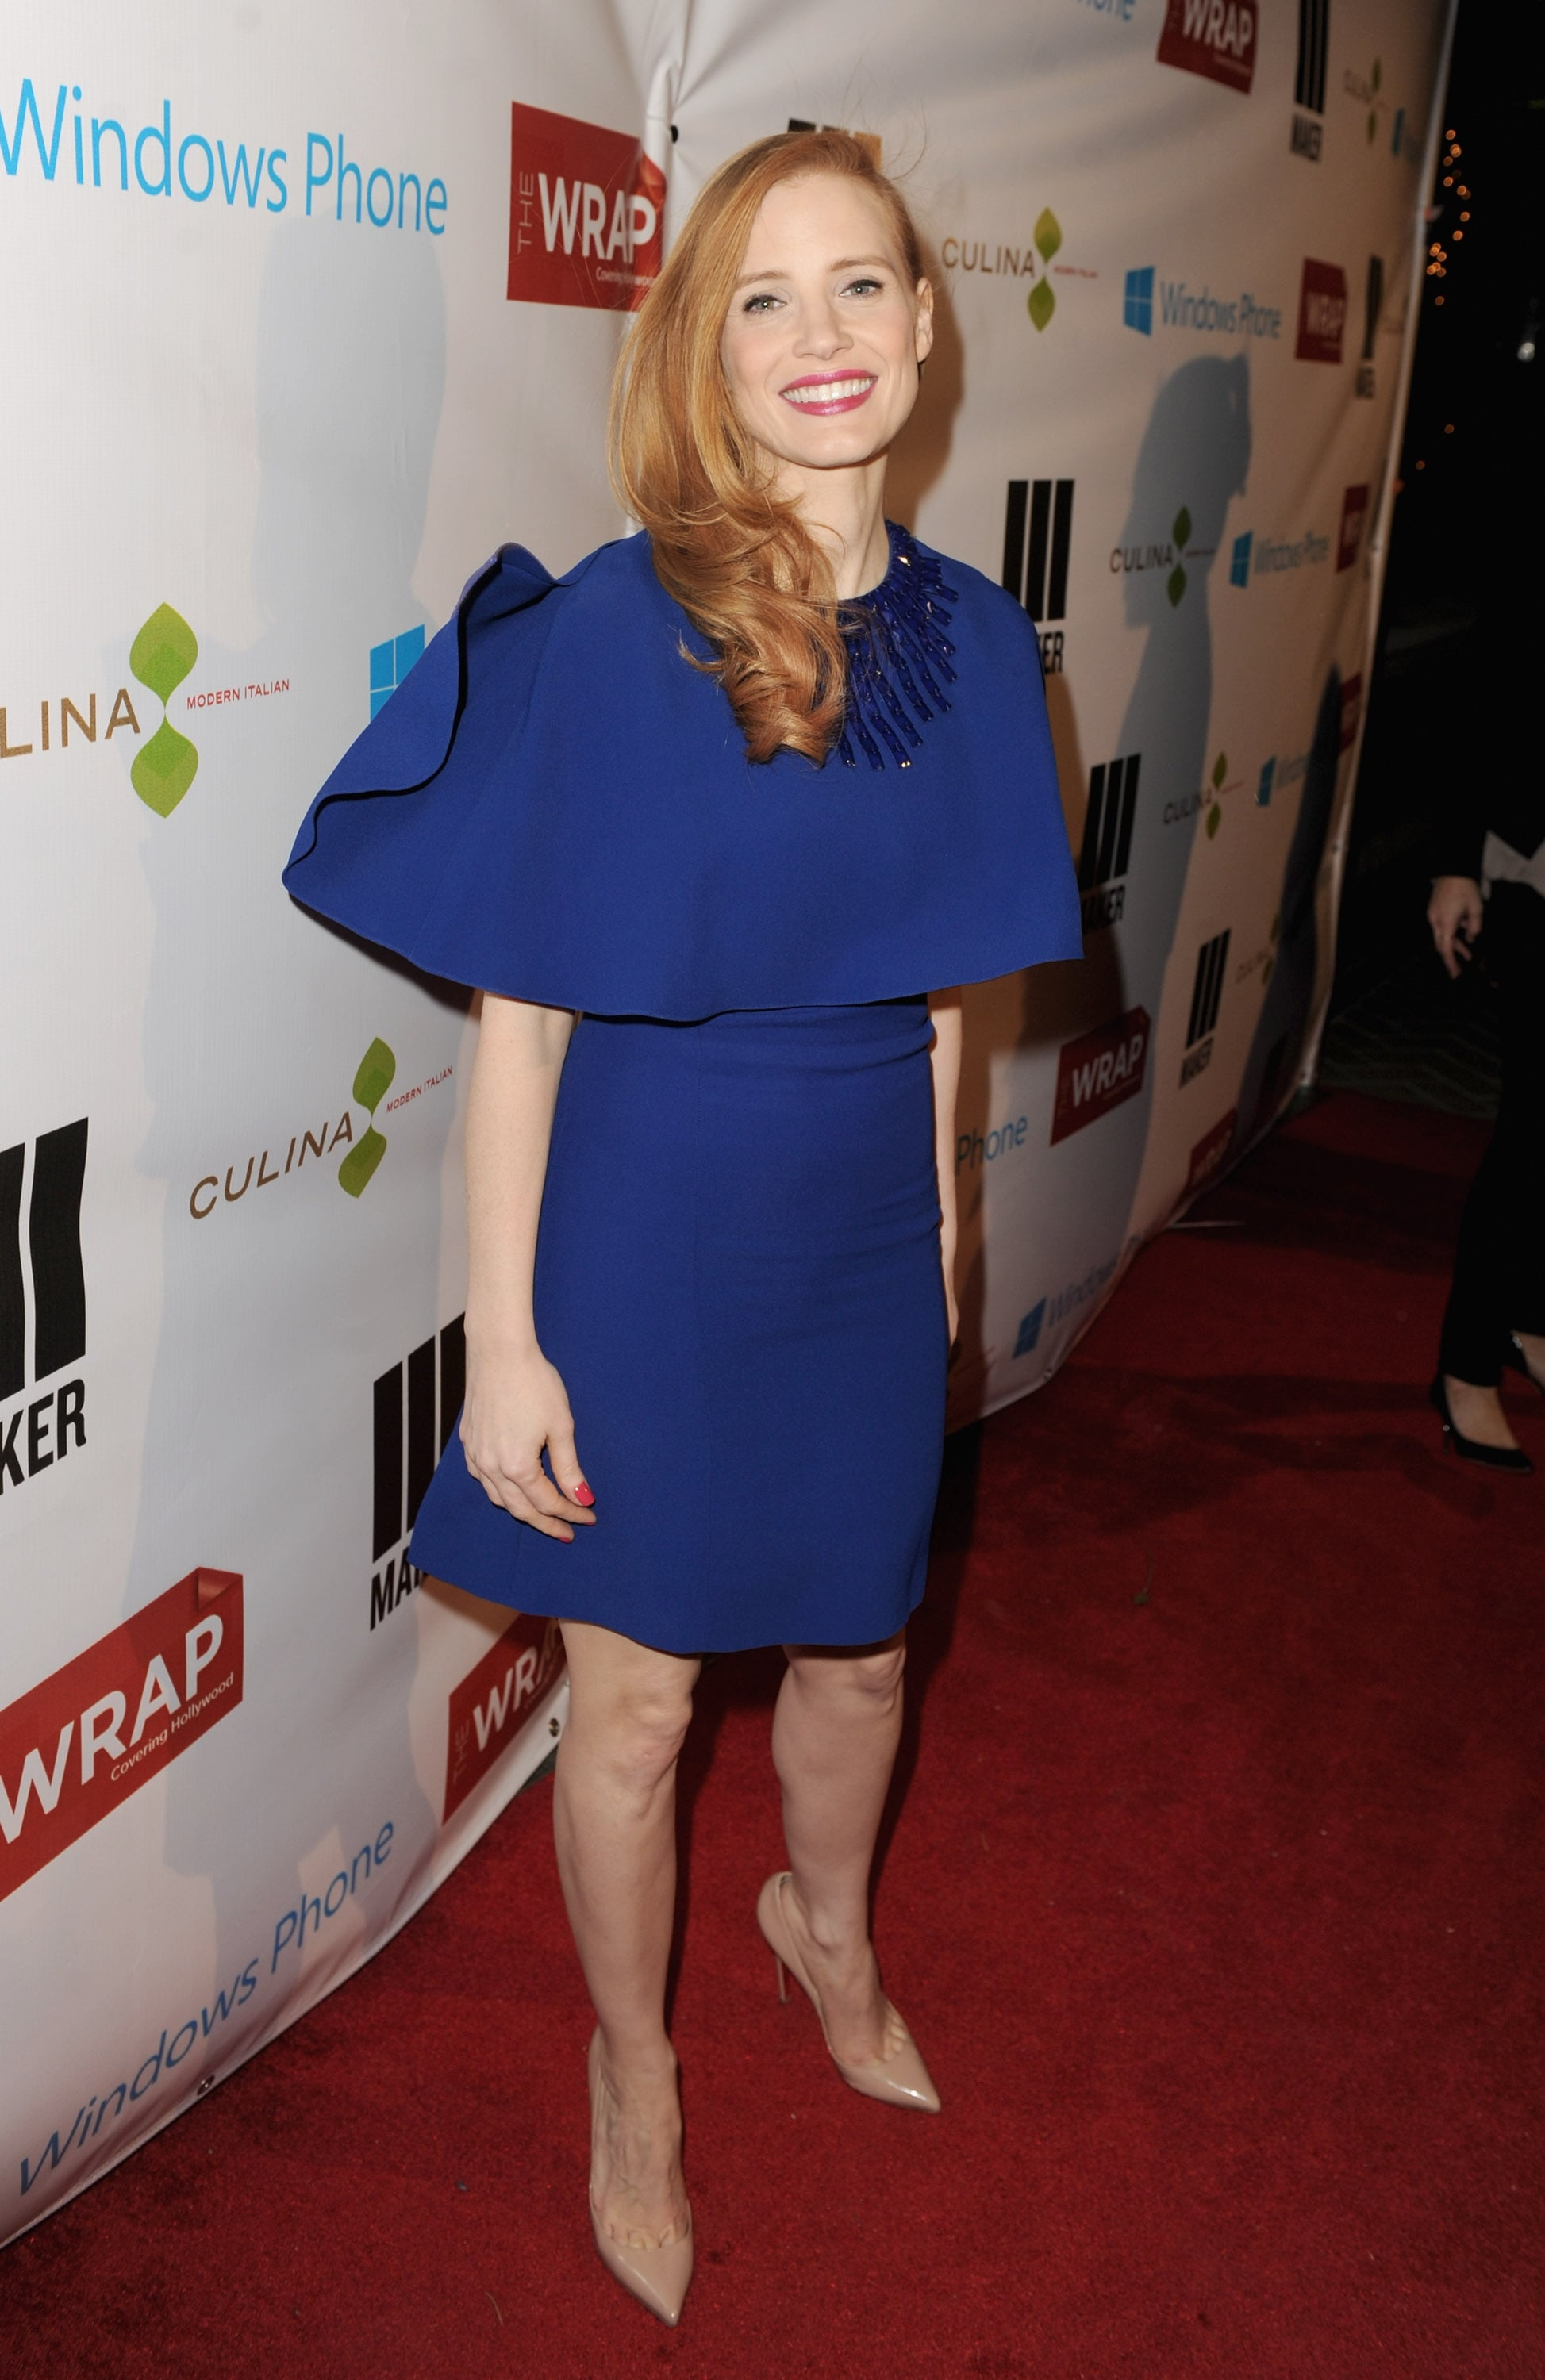 Jessica Chastain stepped out in a blue Andrew Gn dress for TheWrap's pre-Oscars bash on Wednesday.